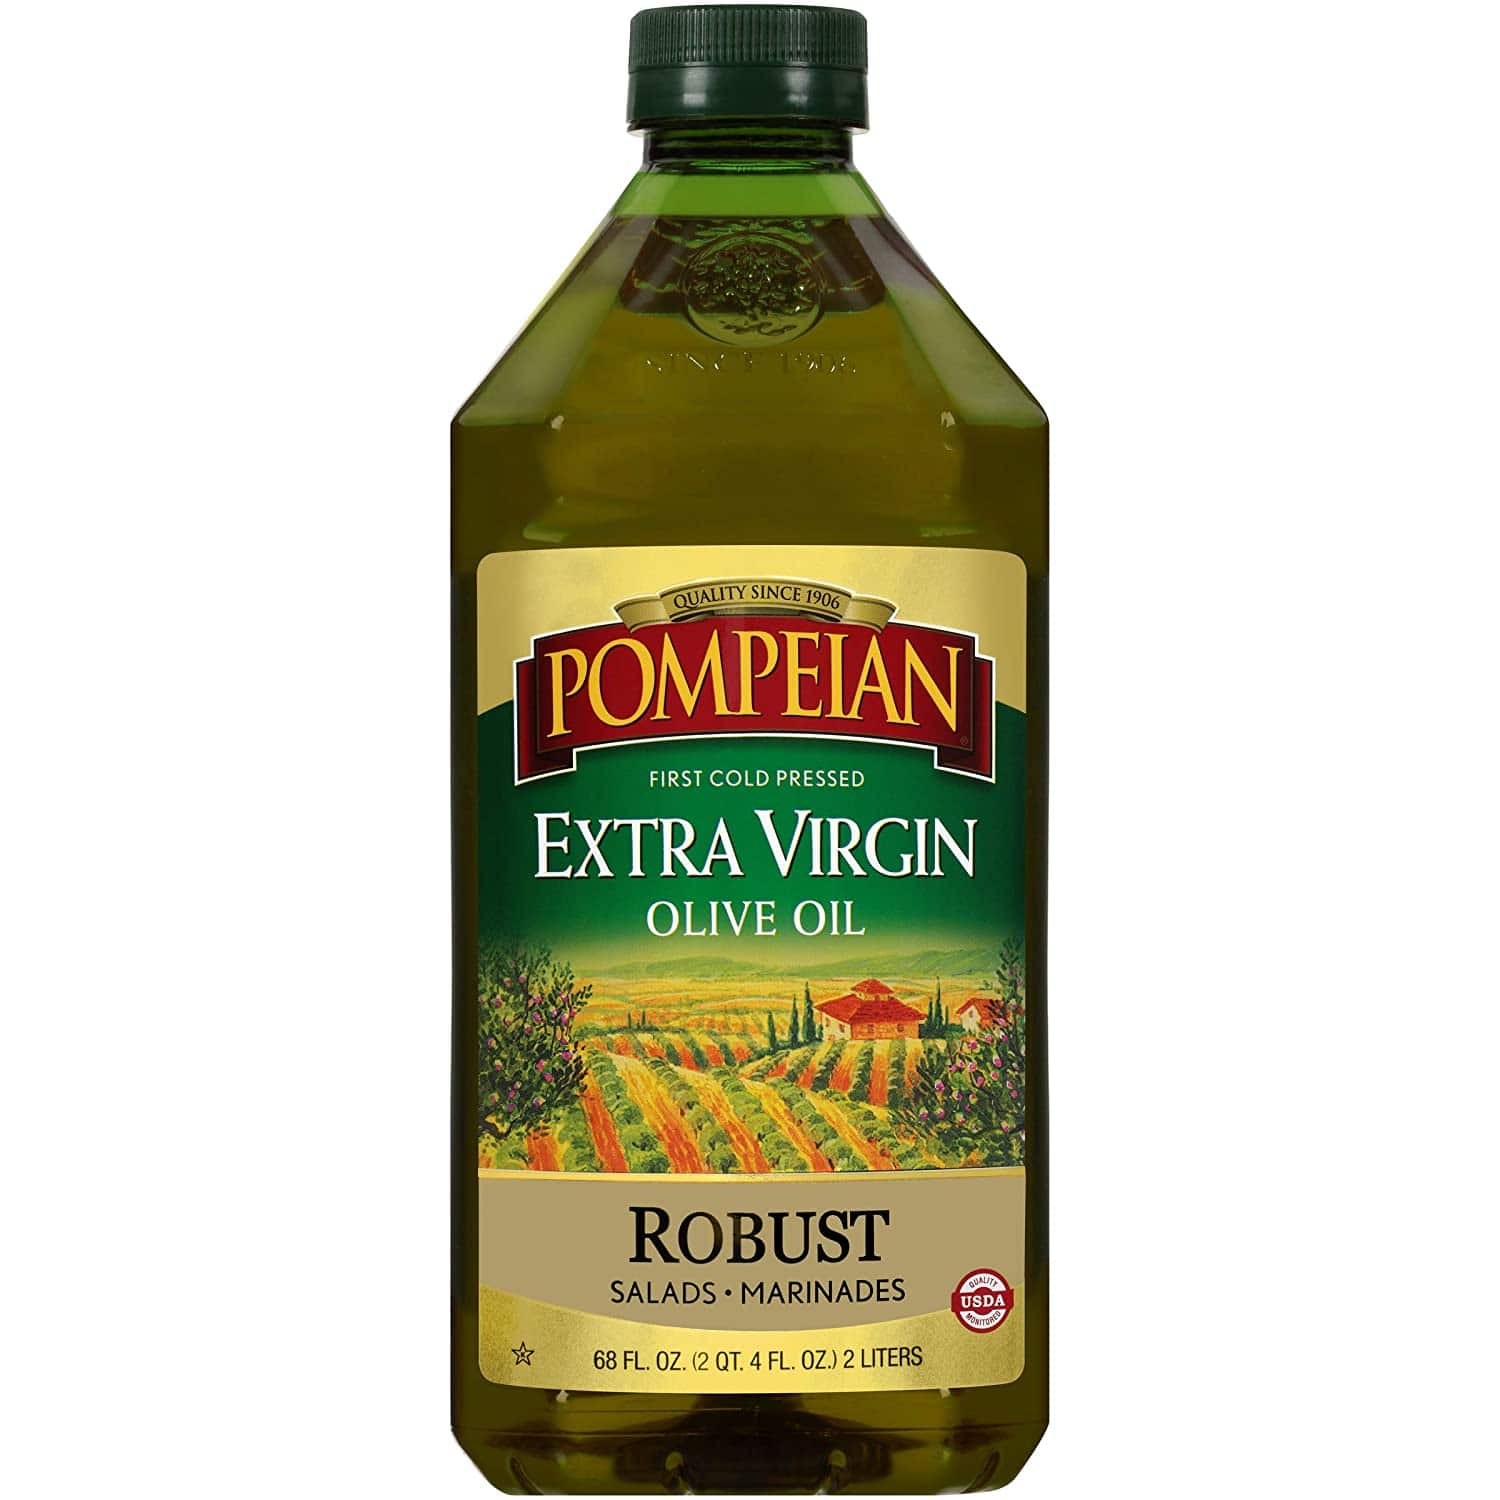 Pompeian Robust Extra Virgin Olive Oil, First Cold Pressed, Full-Bodied Flavor, Perfect for Salad Dressings and Marinades, Gluten Free, Non-Allergenic, Non-GMO, 68 FL. OZ $10.83